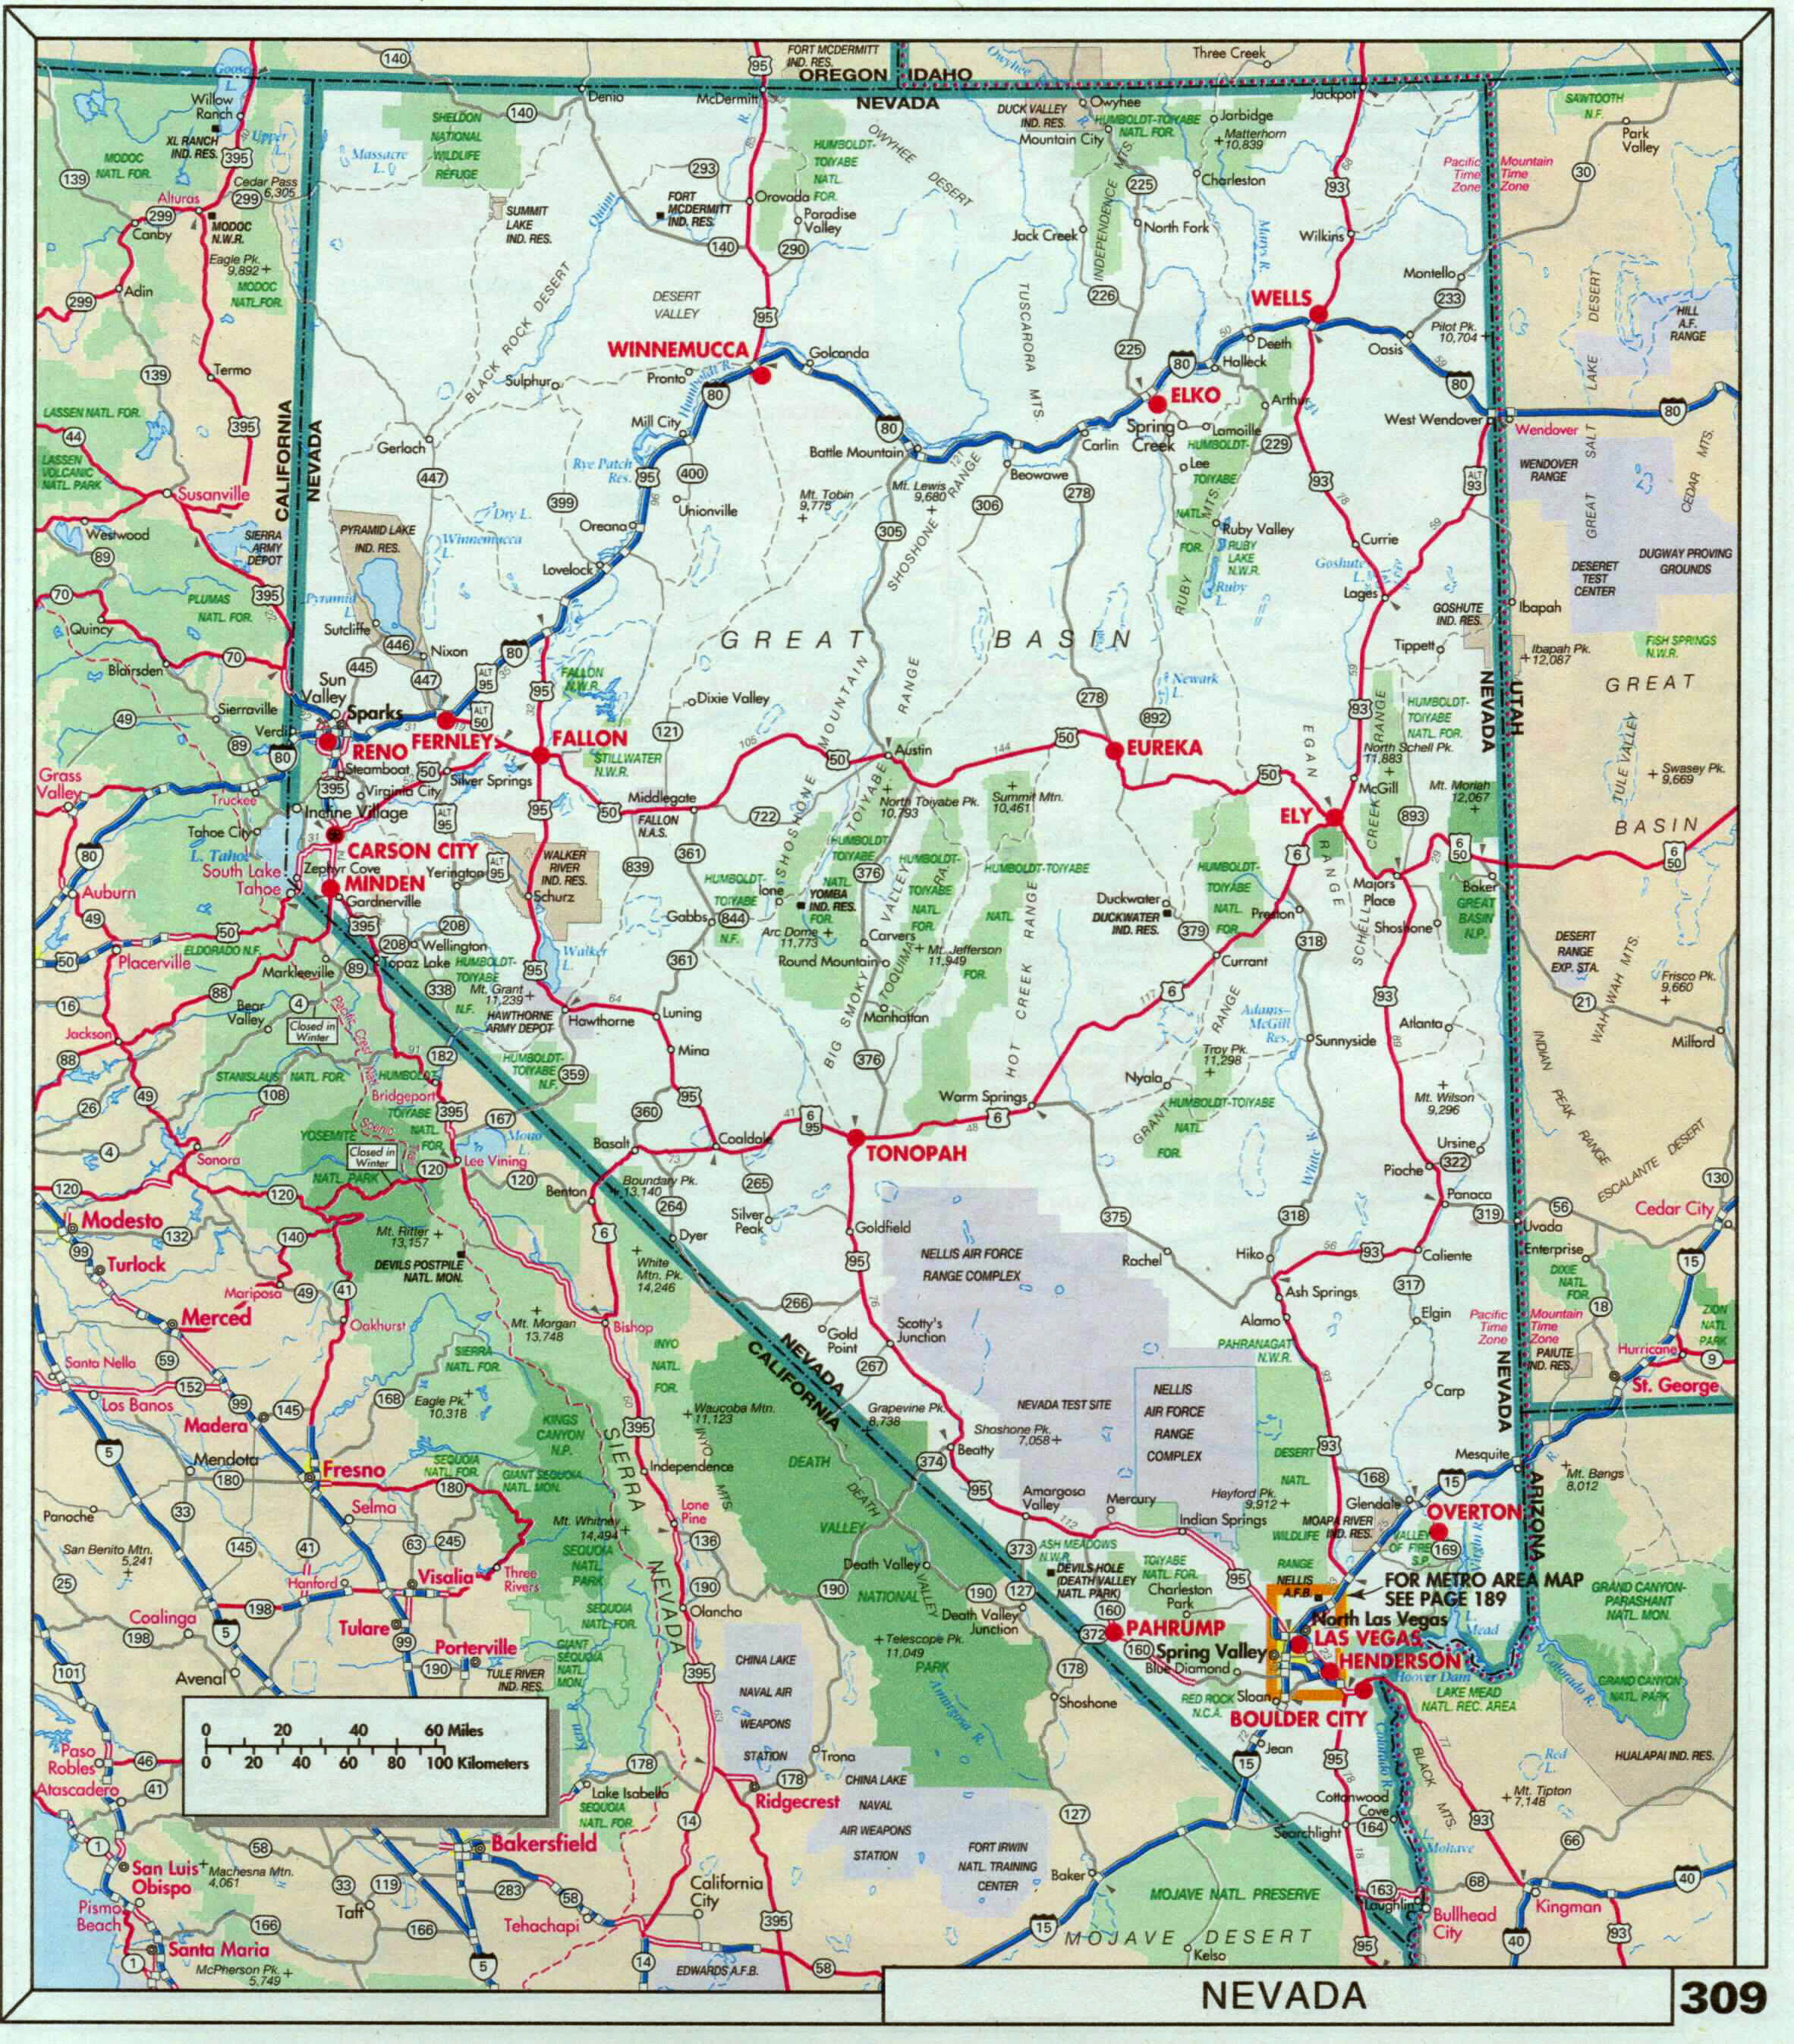 Large Detailed Roads And Highways Map Of Nevada State With - Maps of nevada